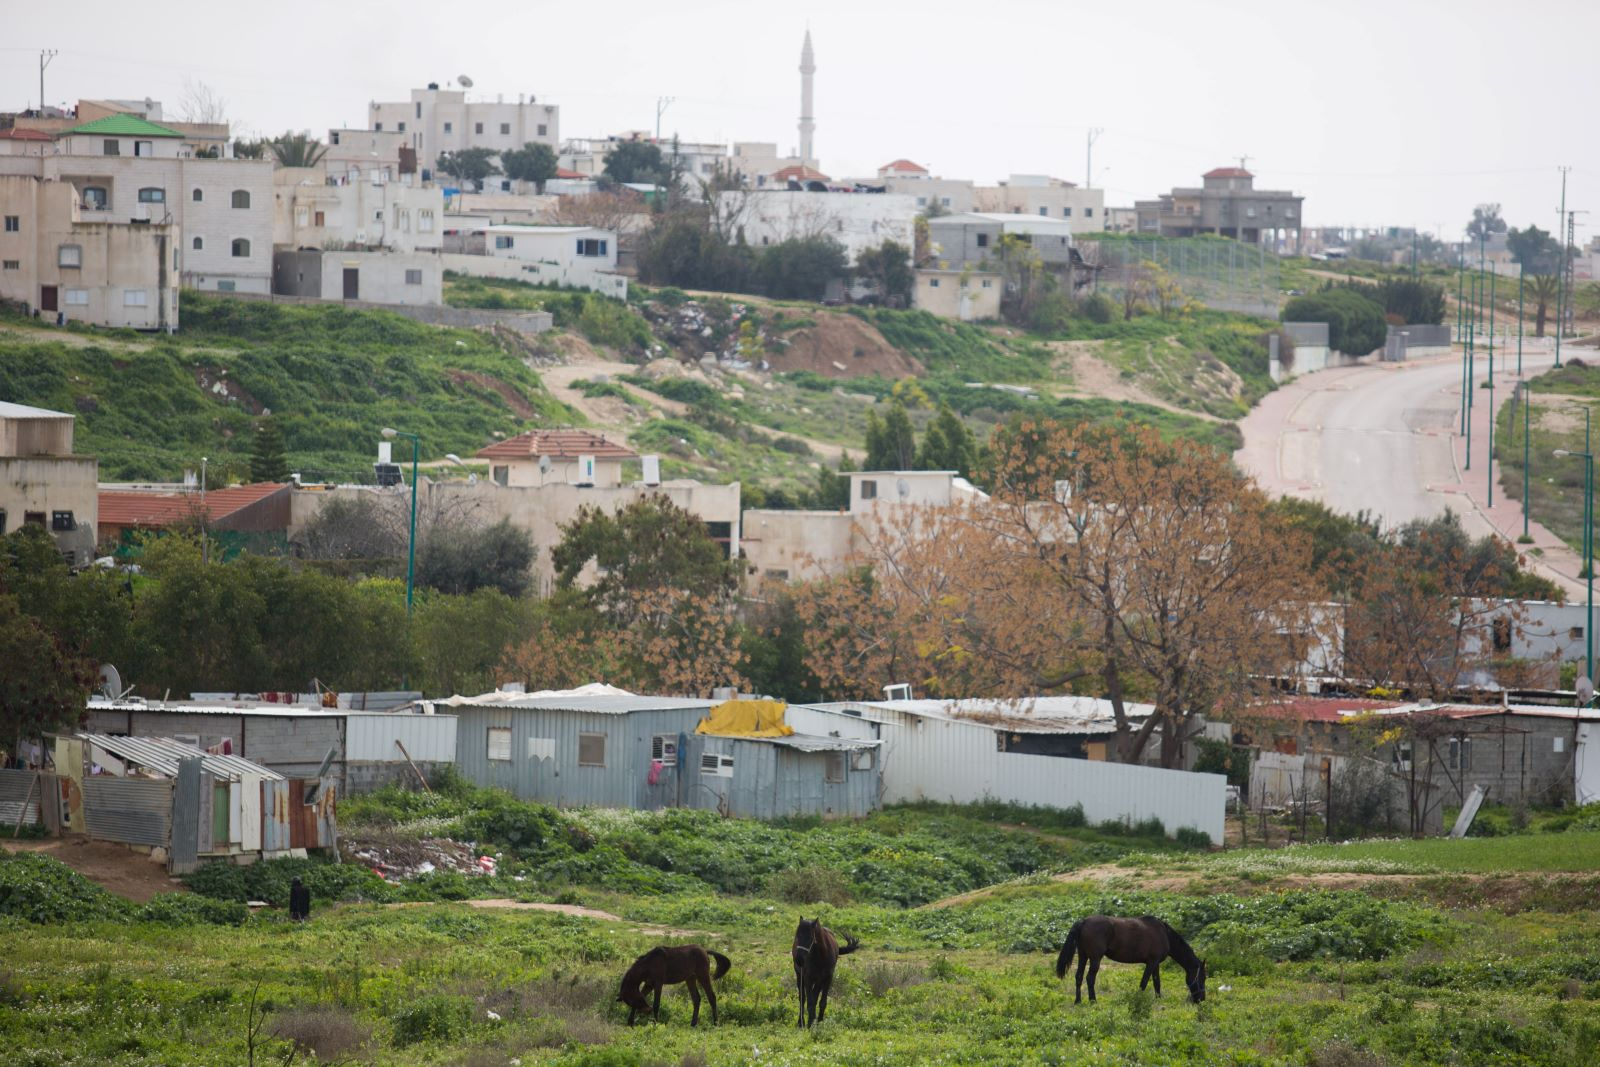 View of the Bedouin city of Rahat in southern Israel, February 13, 2016. (Nati Shohat/Flash90)